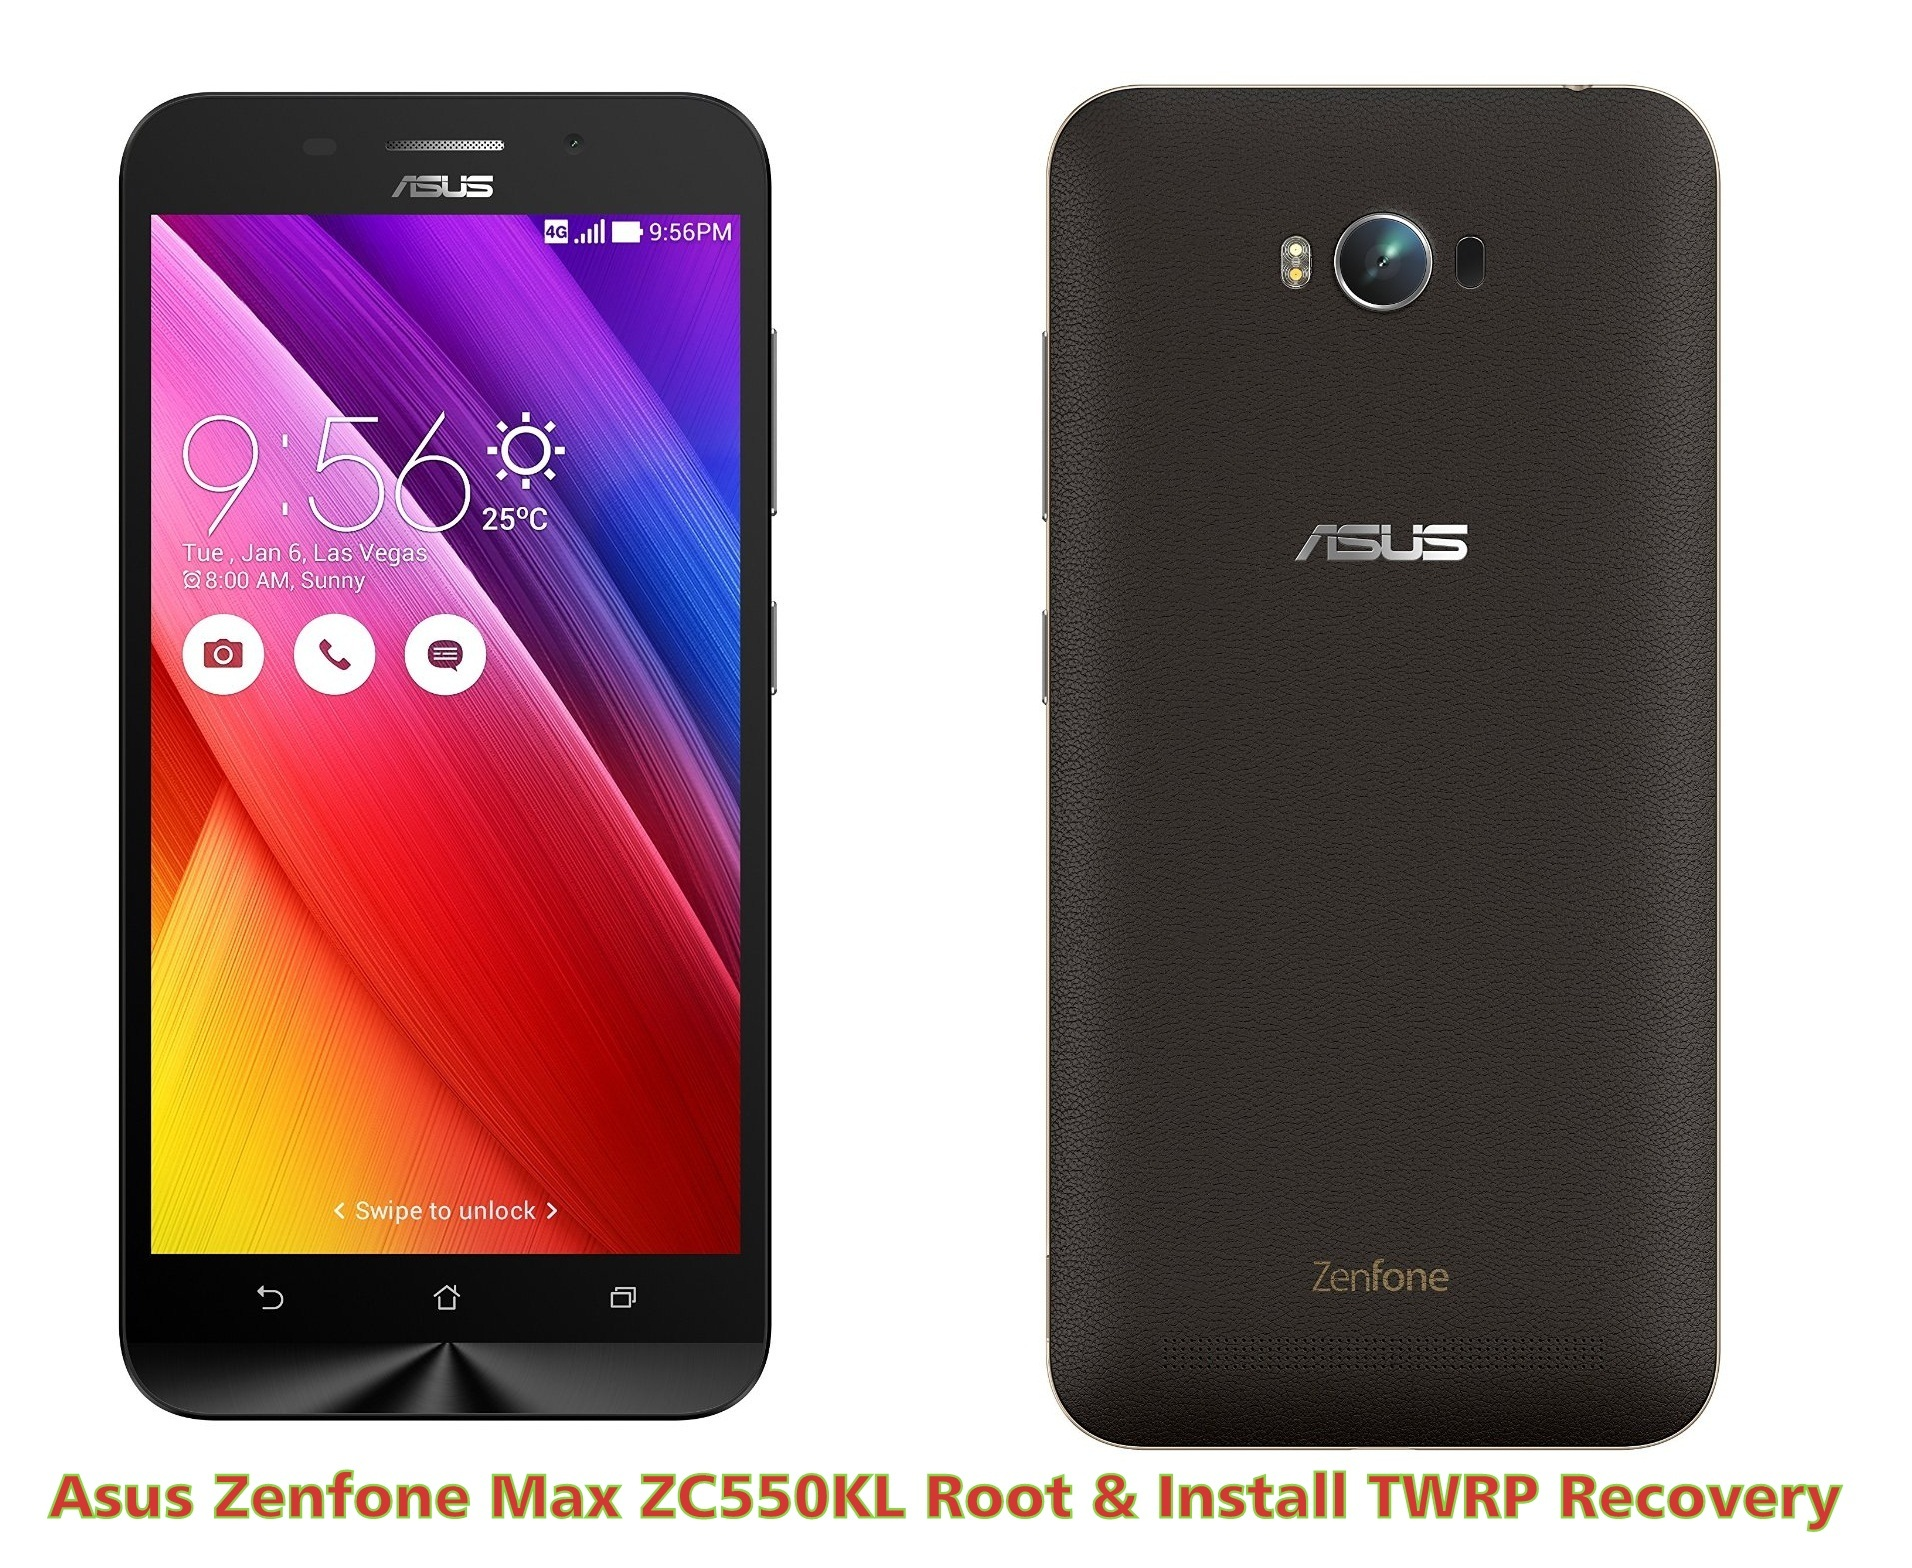 Asus Zenfone Max ZC550KL Root Install TWRP Recovery